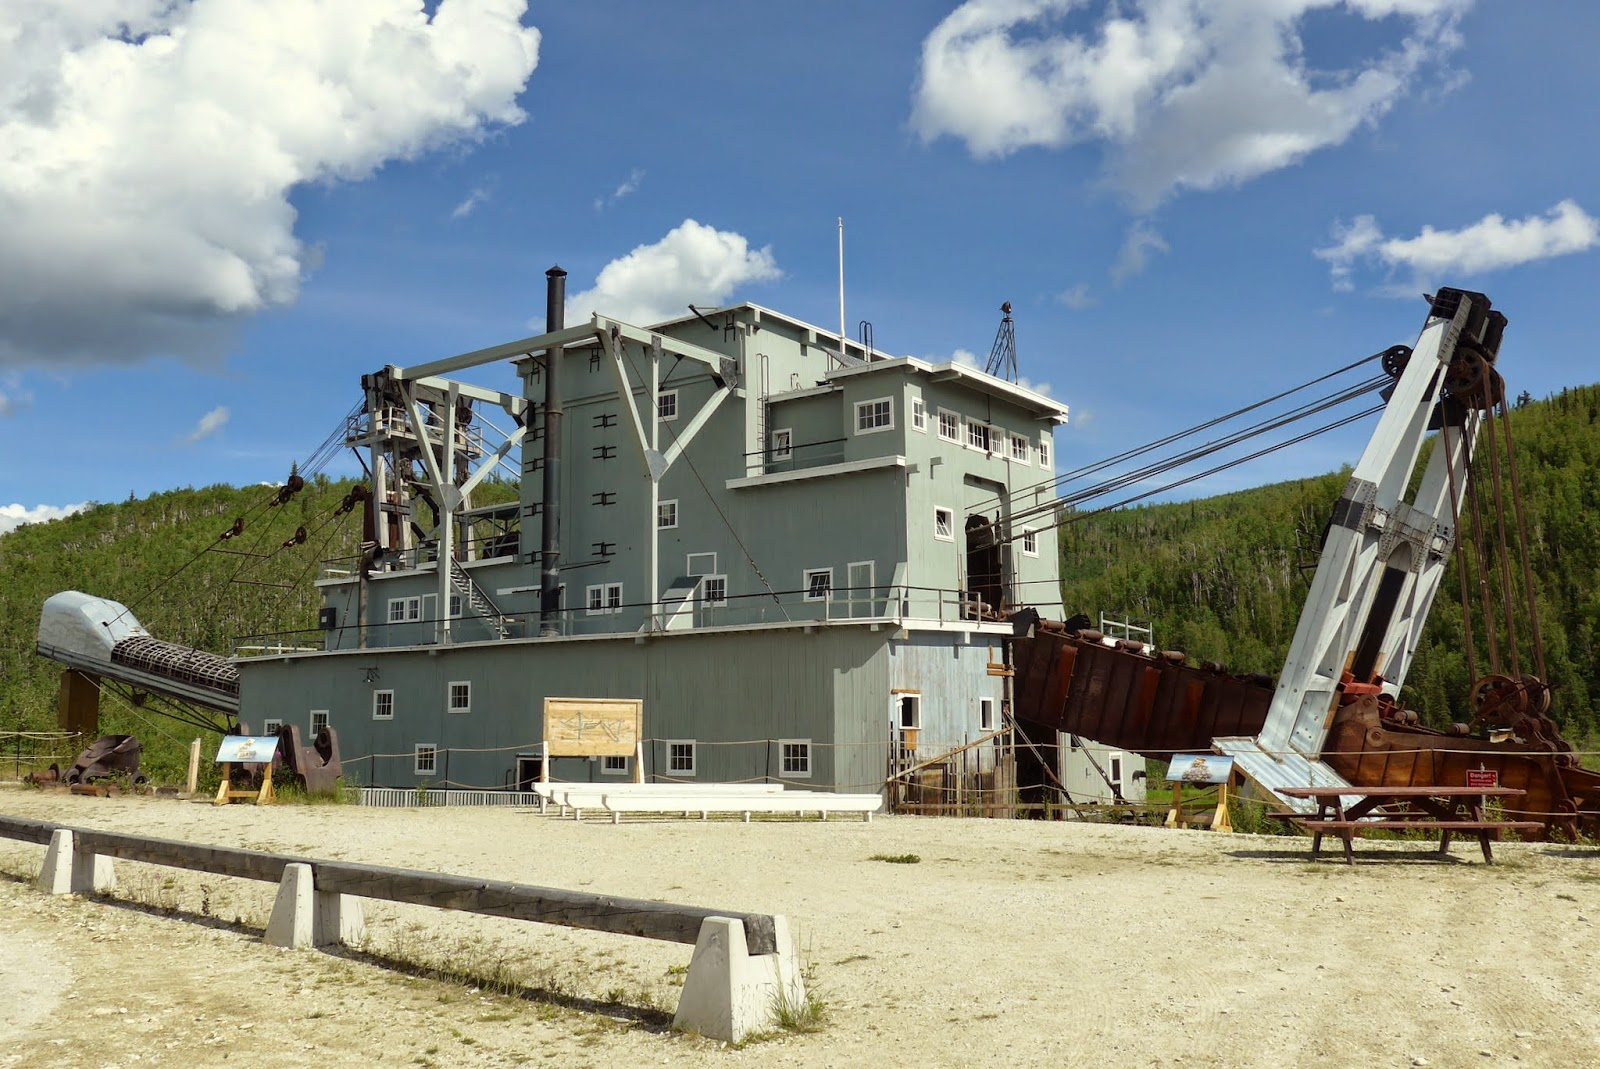 Dredge No 4, Canadian National Historic Site. It is massive.